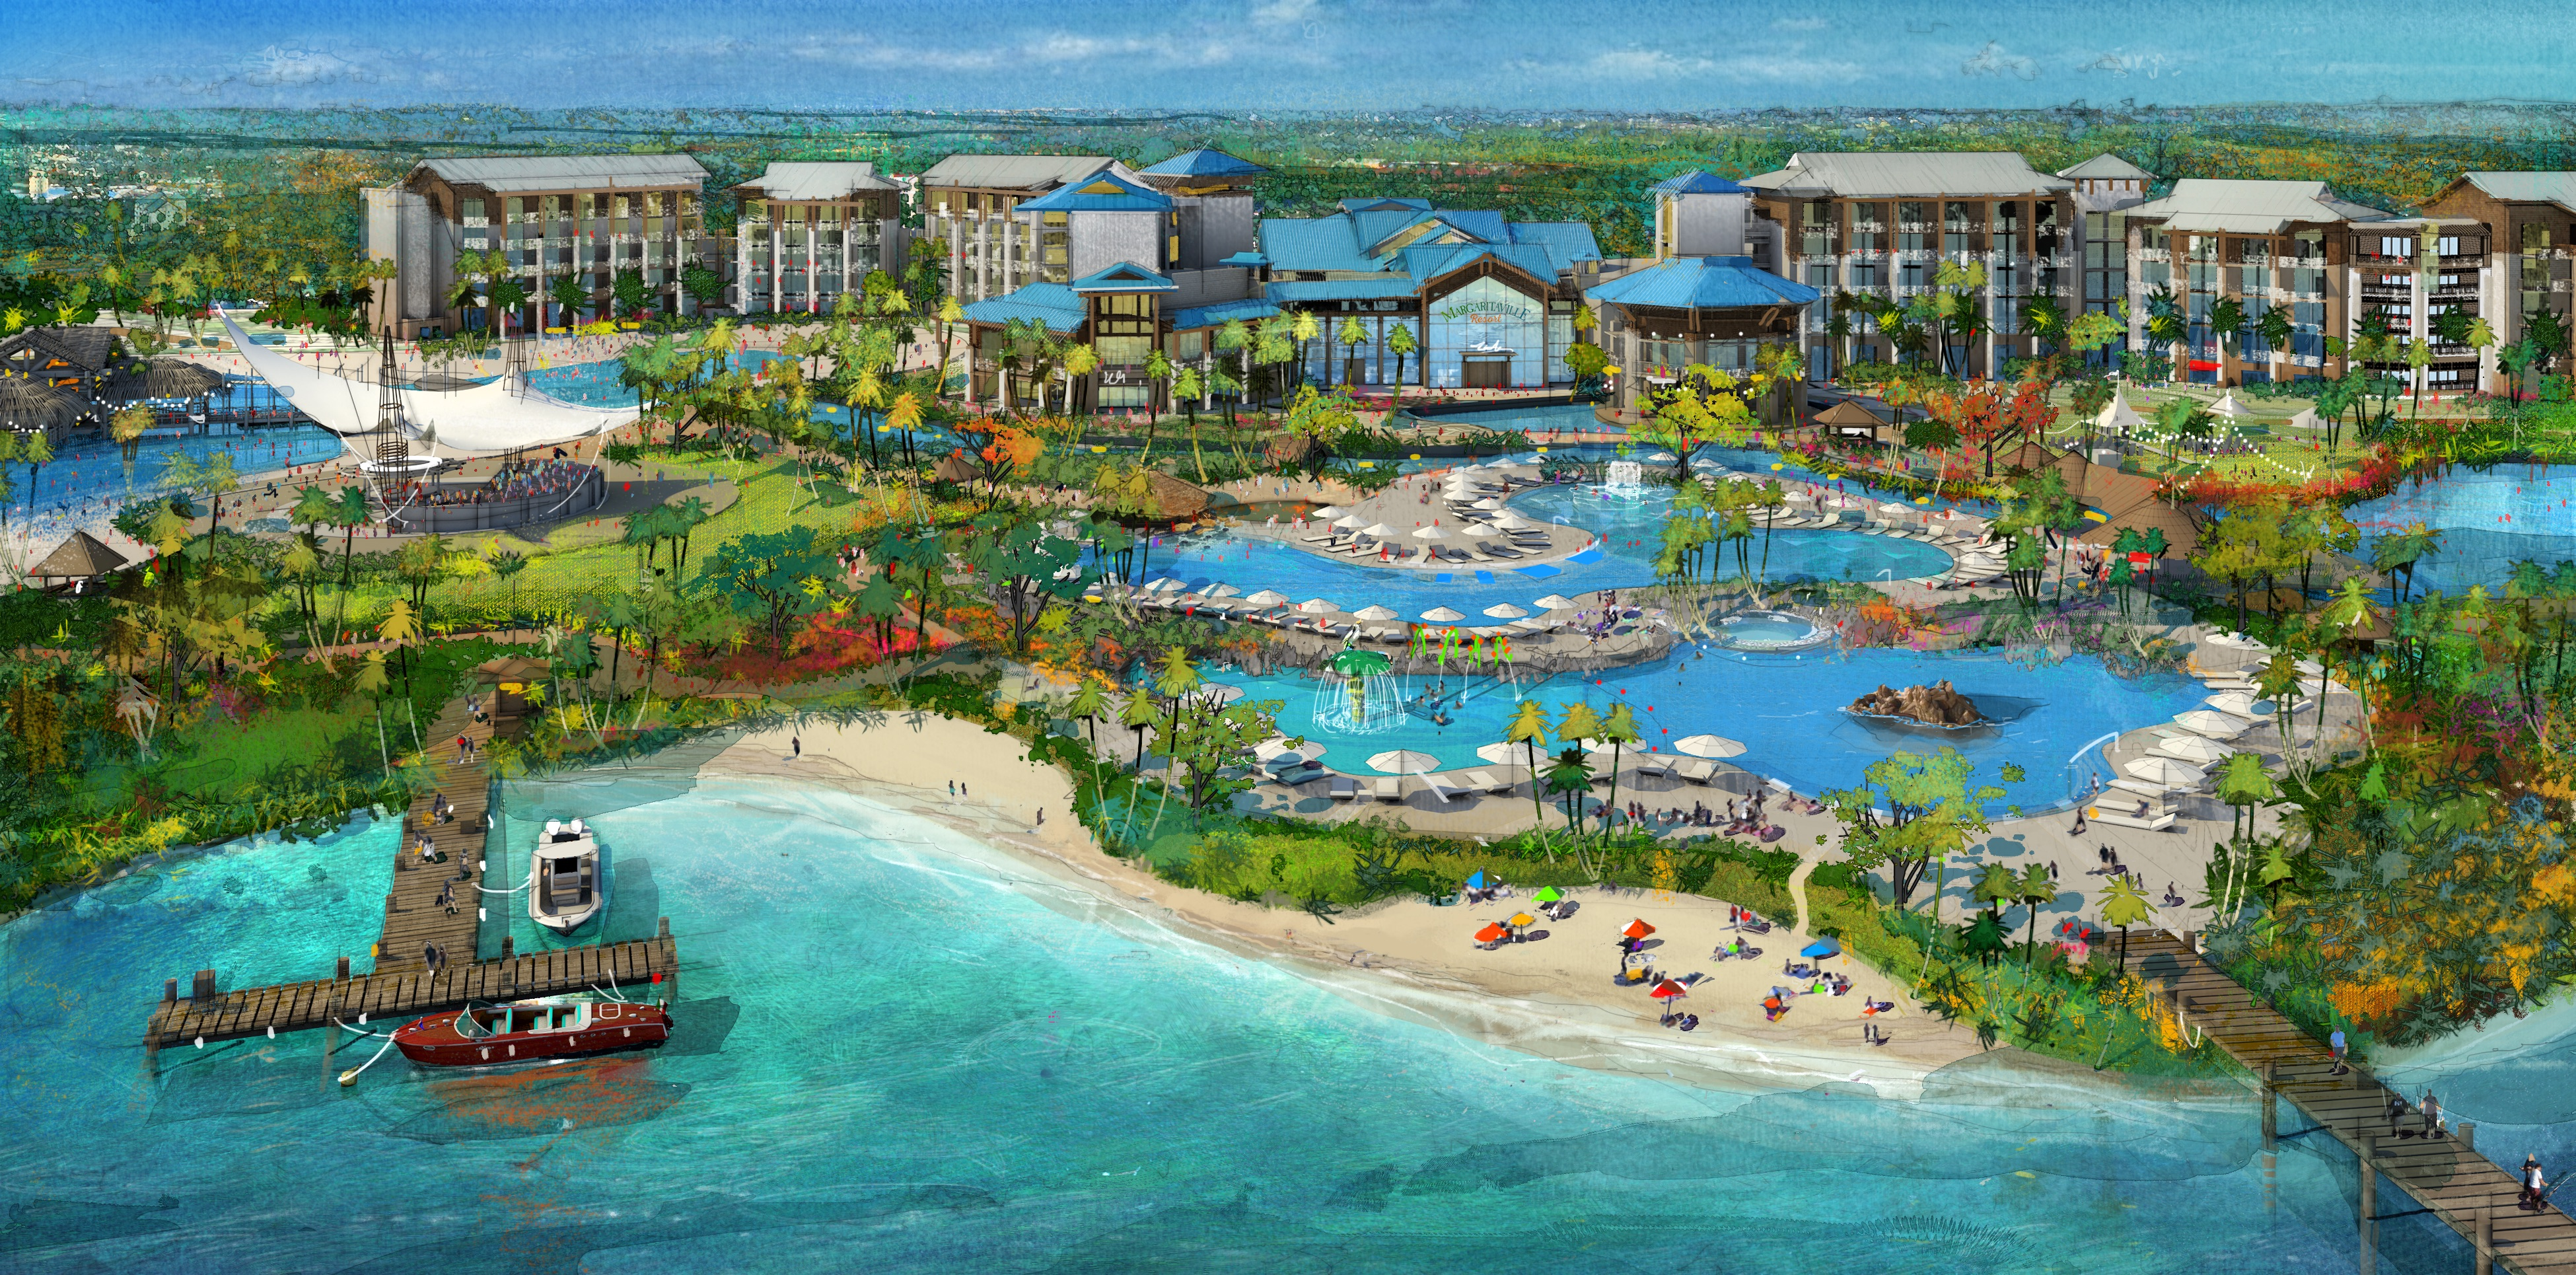 Margaritaville Resort Orlando Reveals First Renderings